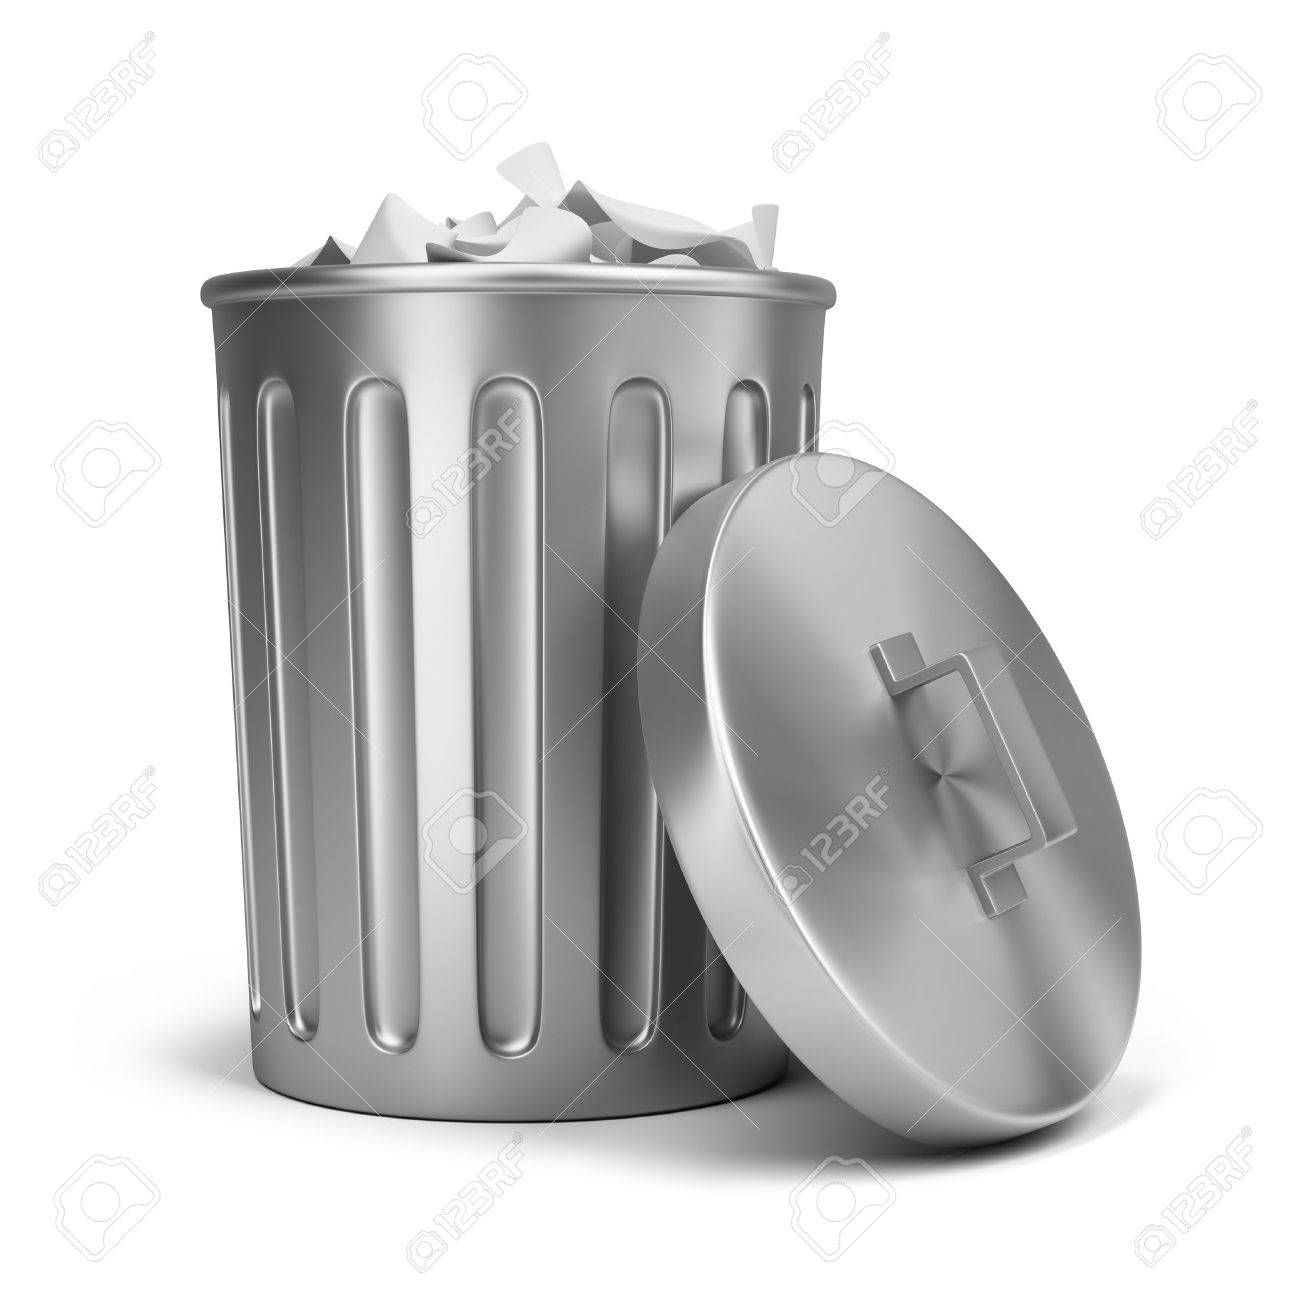 steel trash can 3d image isolated white background stock photo